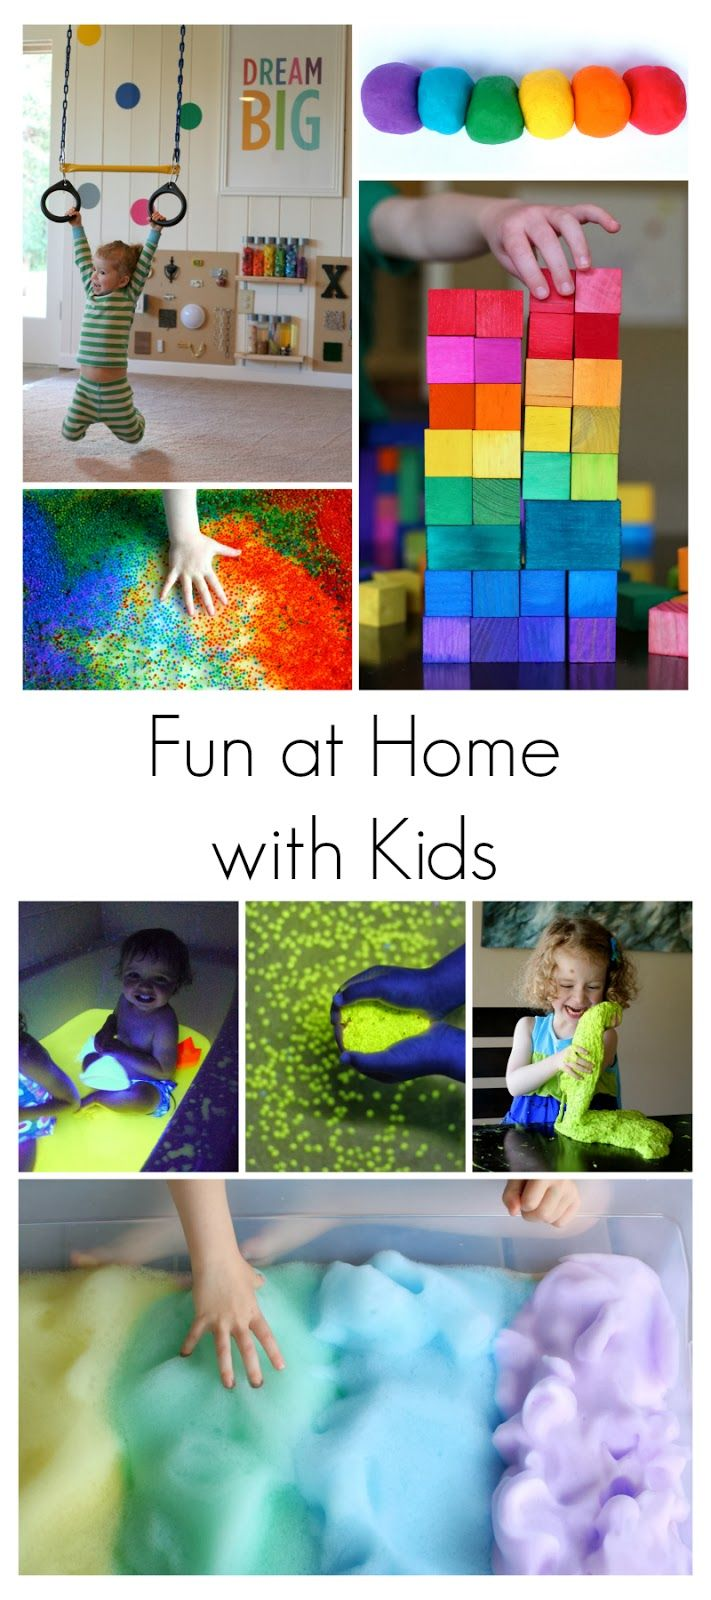 Our 15 Best Activities for Babies, Toddlers, and Preschoolers from Fun at Home with Kids....and a BIG ANNOUNCEMENT. :)